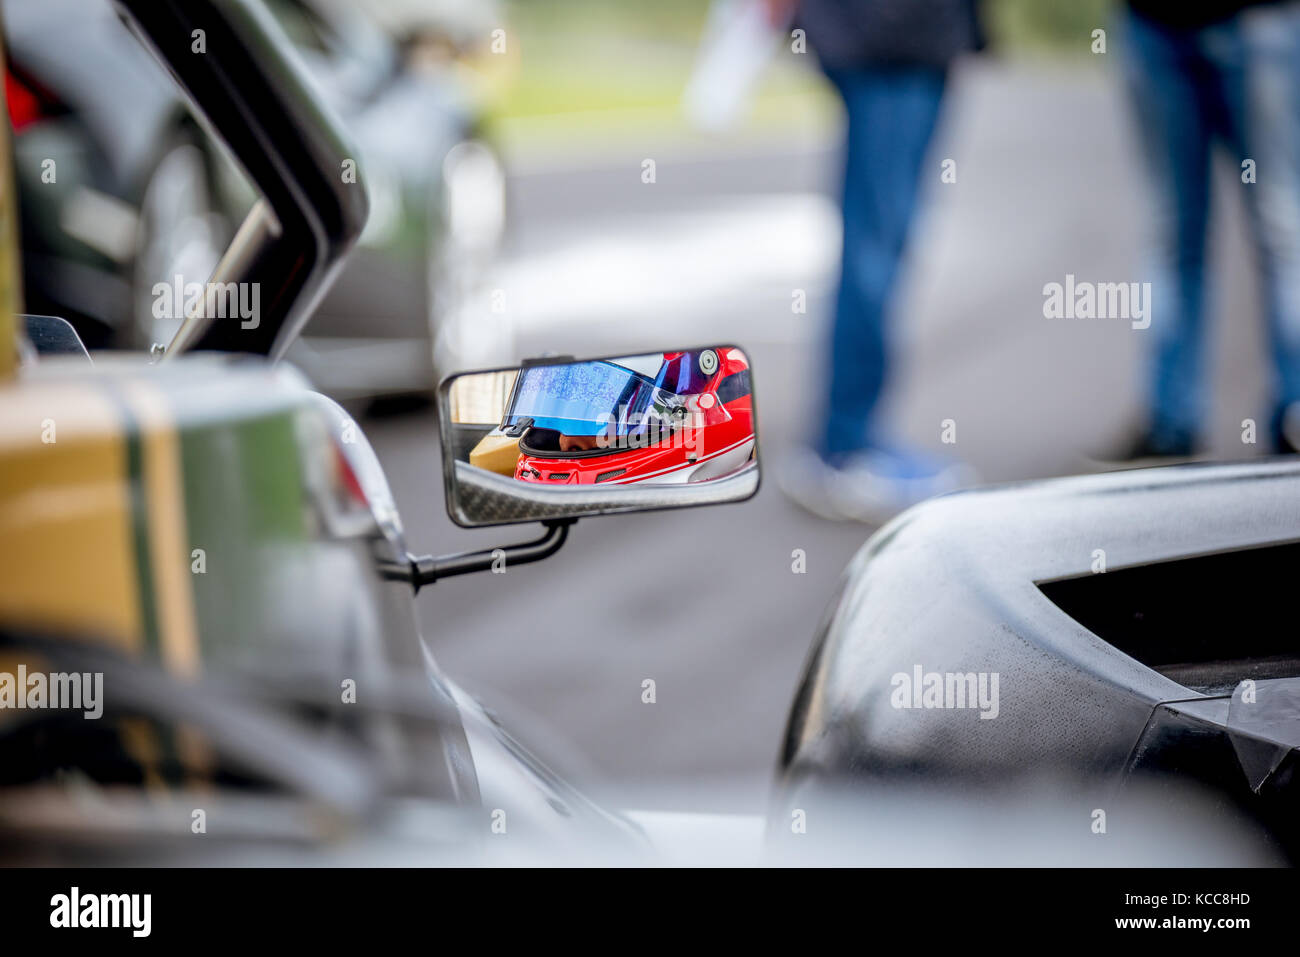 Motor sport car driver detail on rear view mirror before race start on starting grid - Stock Image